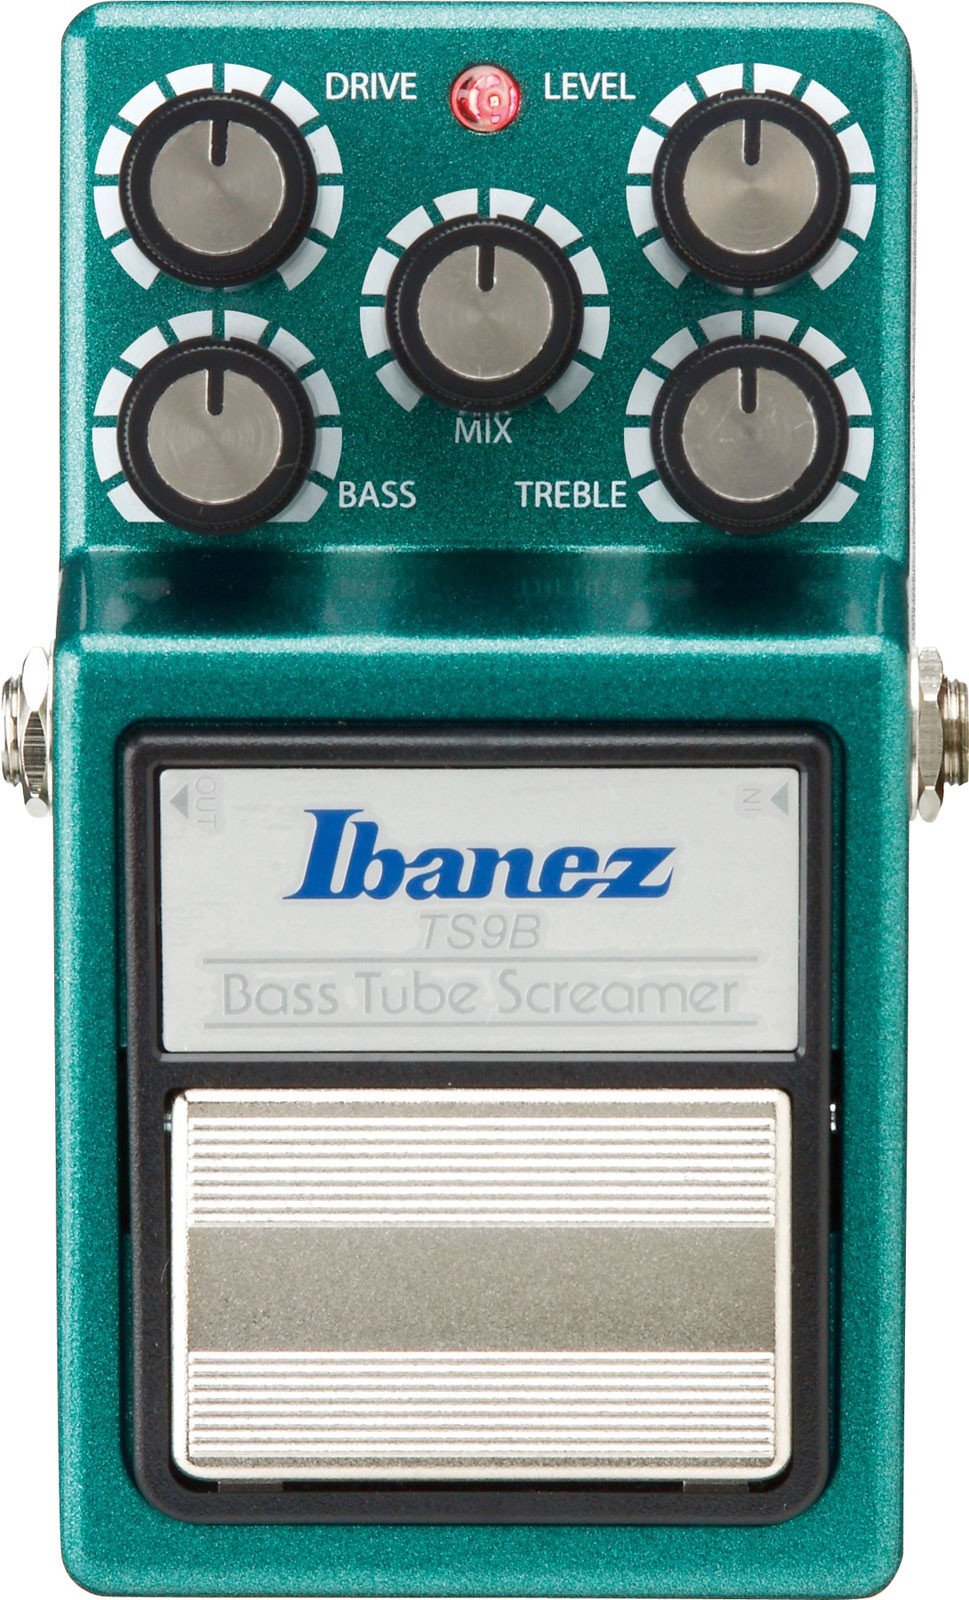 Ibanez TS9B Bass Tube Screamer Pedal